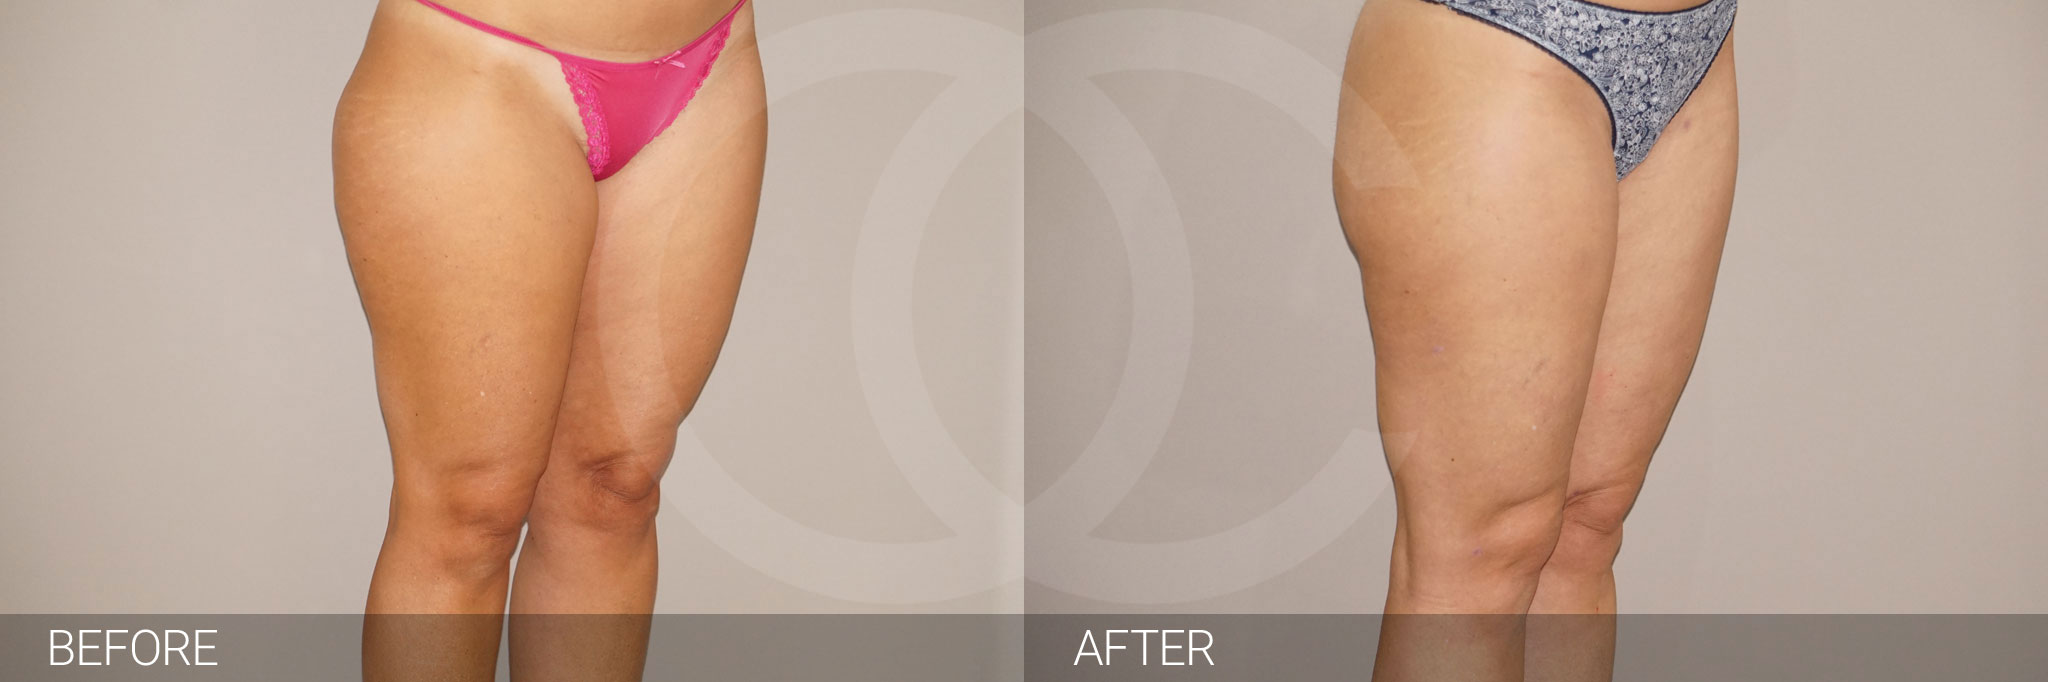 Liposuction Waterjet-assisted Liposuction ante/post-op III